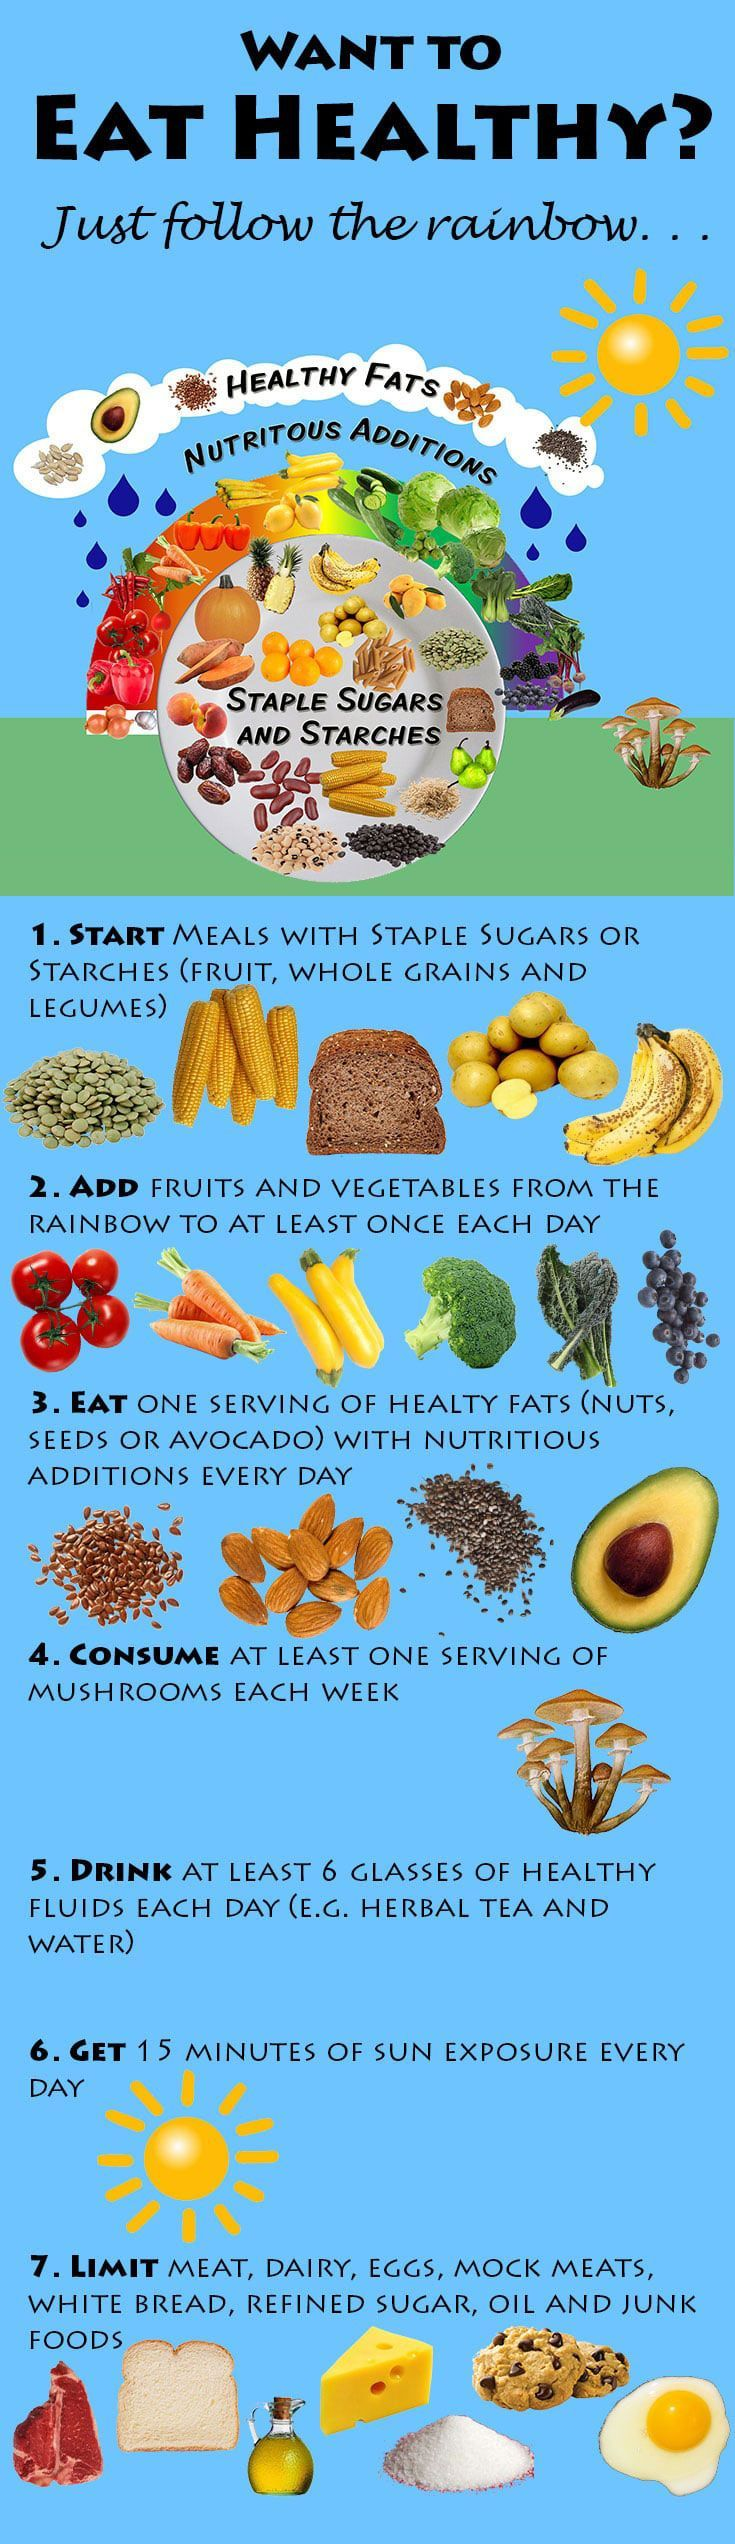 Want to eat healthy? Dietary Guidelines for Healthy Living – The Rainbow Plate. This is an easy guideline that anybody can follow. It's so simple! This is the easiest way to eat healthy and nutritiously. Everything is accounted for here.